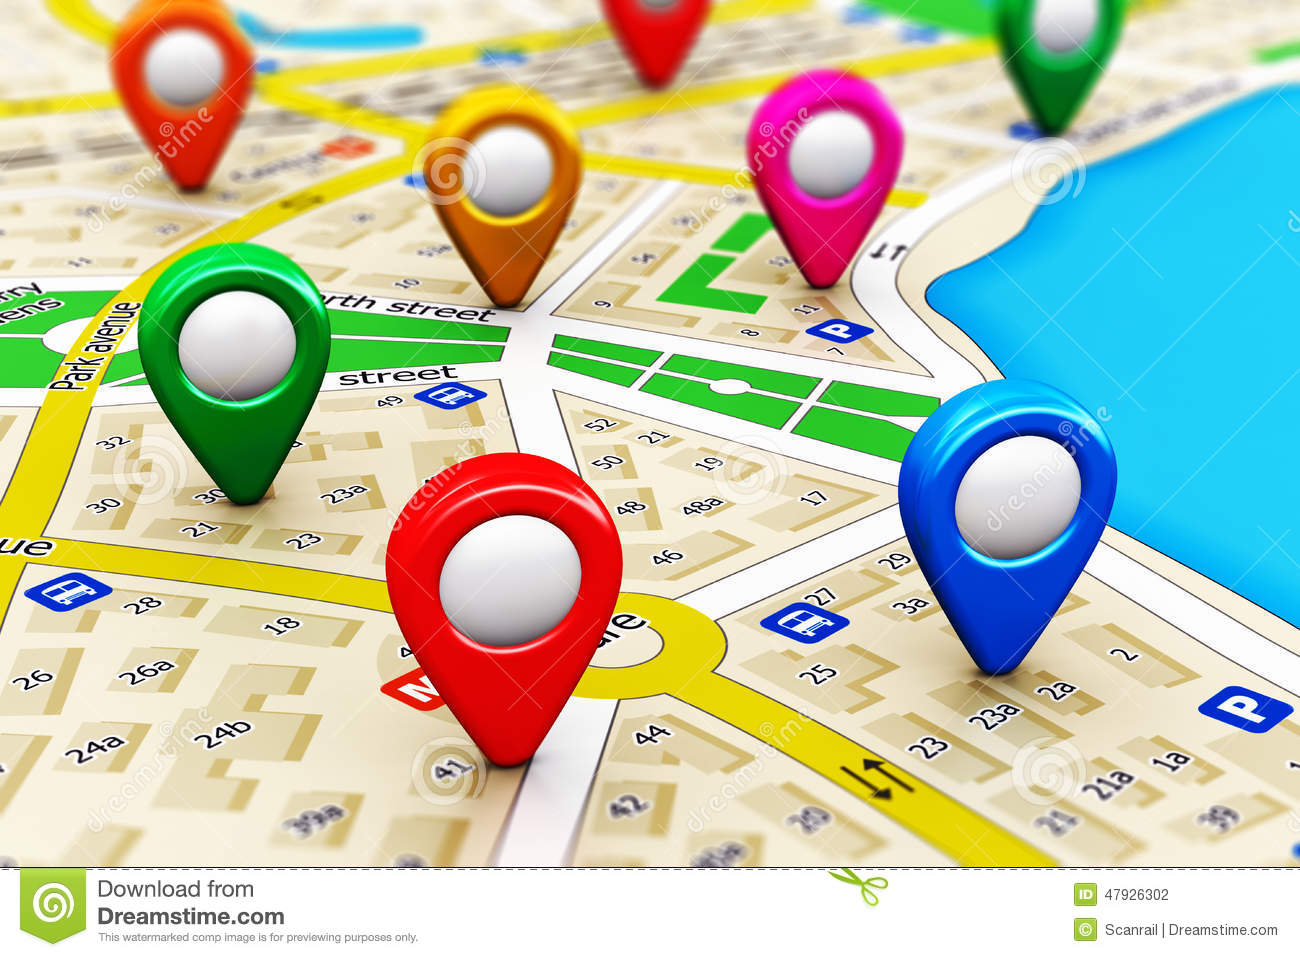 mapping multiple locations with Stock Illustration Gps Navigation Concept Creative Abstract Satellite Travel Tourism Location Route Planning Business Macro View Color City Image47926302 on ManagementSystem furthermore Roboearth ethz also Stock Illustration Gps Navigation Concept Creative Abstract Satellite Travel Tourism Location Route Planning Business Macro View Color City Image47926302 likewise What Is The Femoral Artery additionally 03.